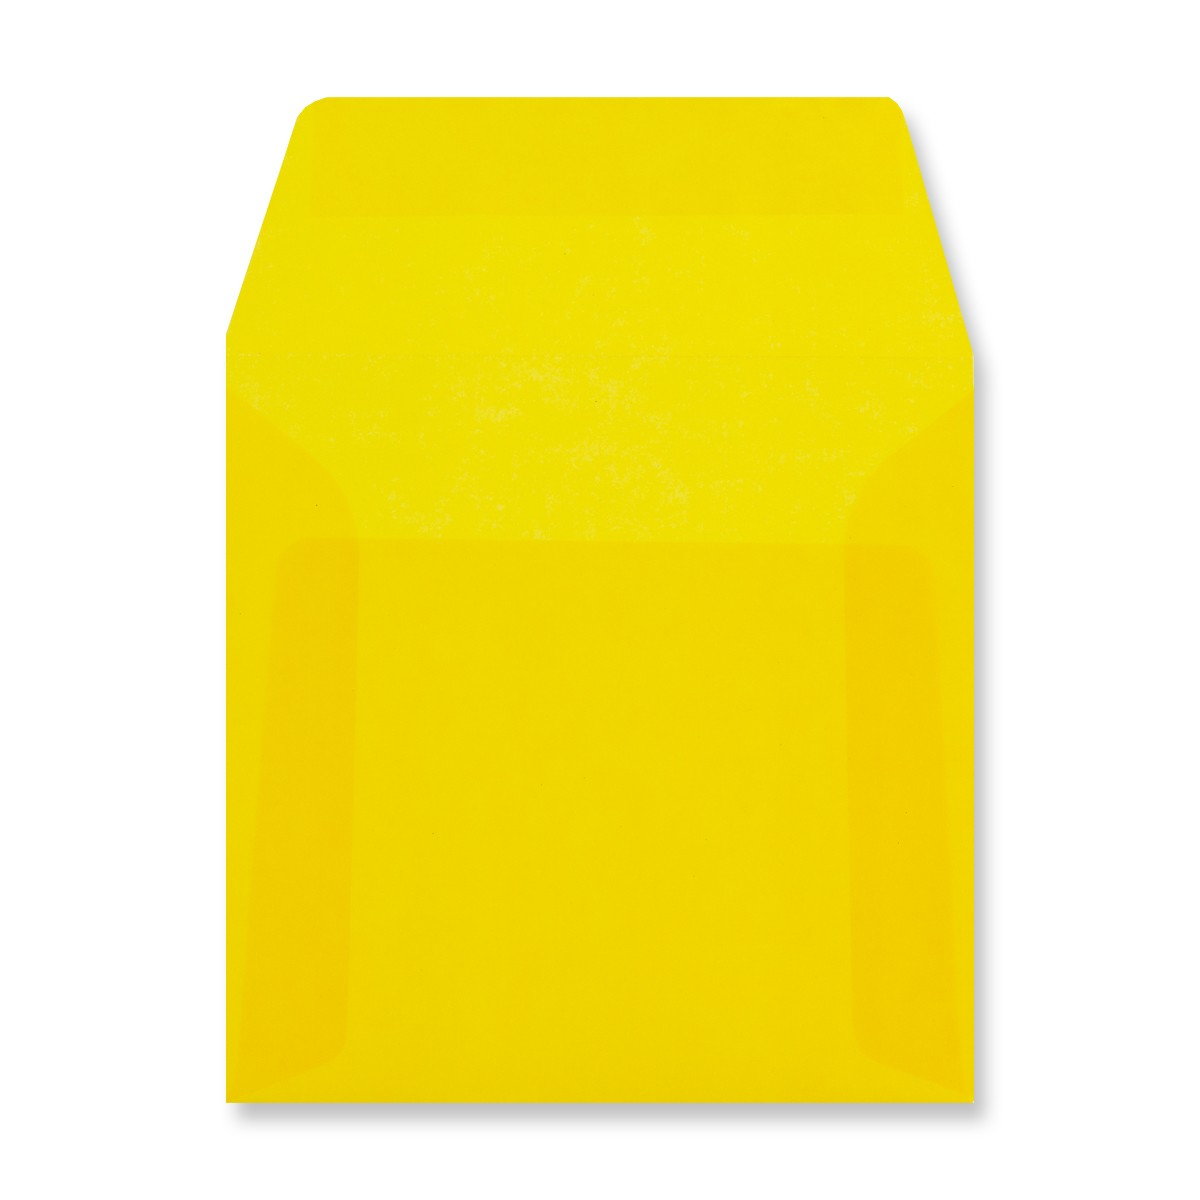 125 x 125MM YELLOW TRANSLUCENT ENVELOPES